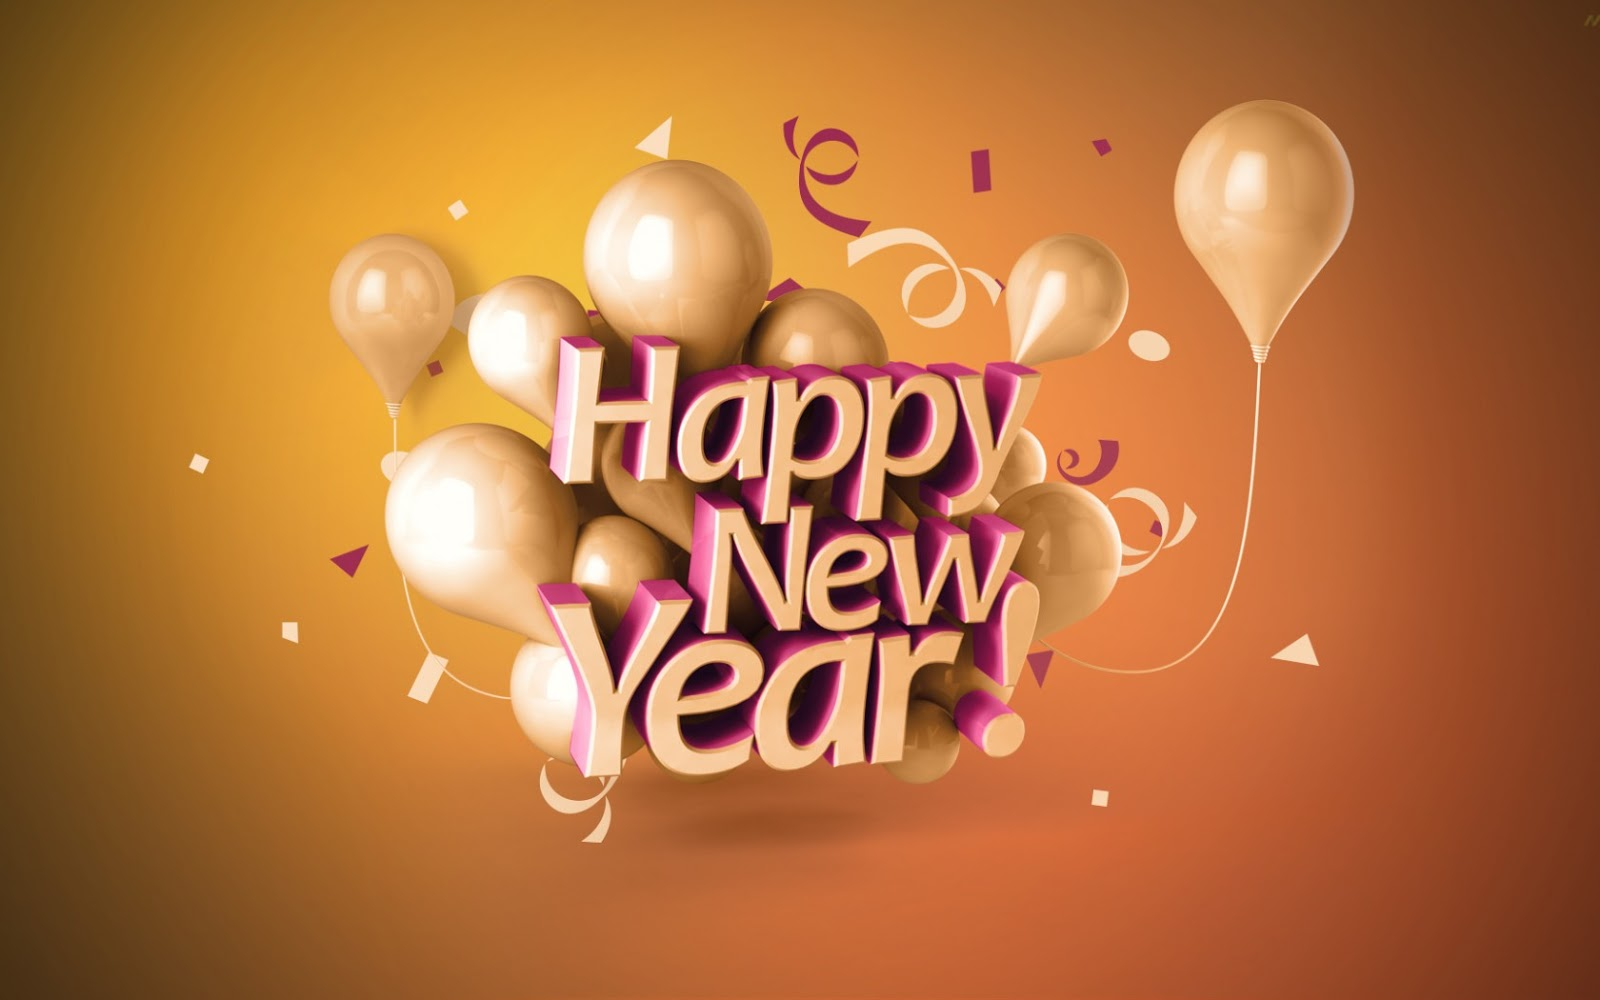 Happy new year 2018 images hd wallpapers status quotes happy new year 2018 images for kids kristyandbryce Choice Image